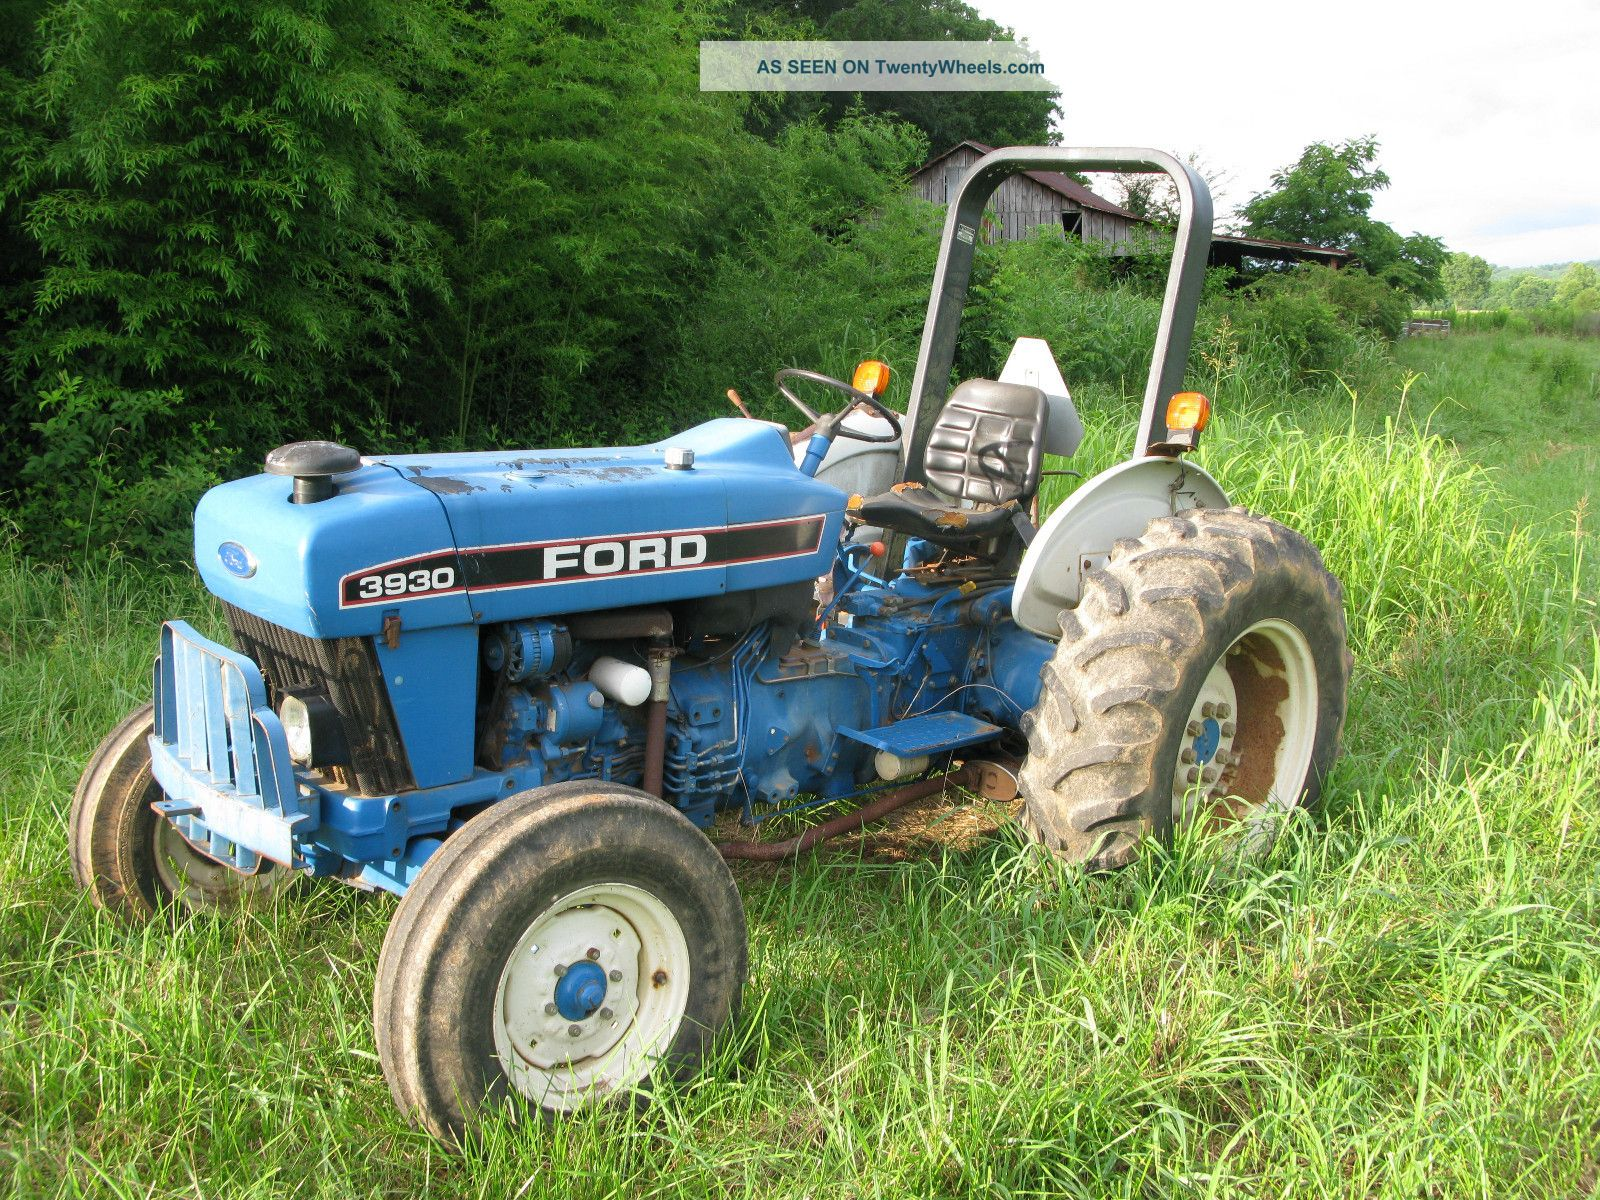 Kubota Tractors Information - SSB Tractor Forum 3430 ford tractor pictures